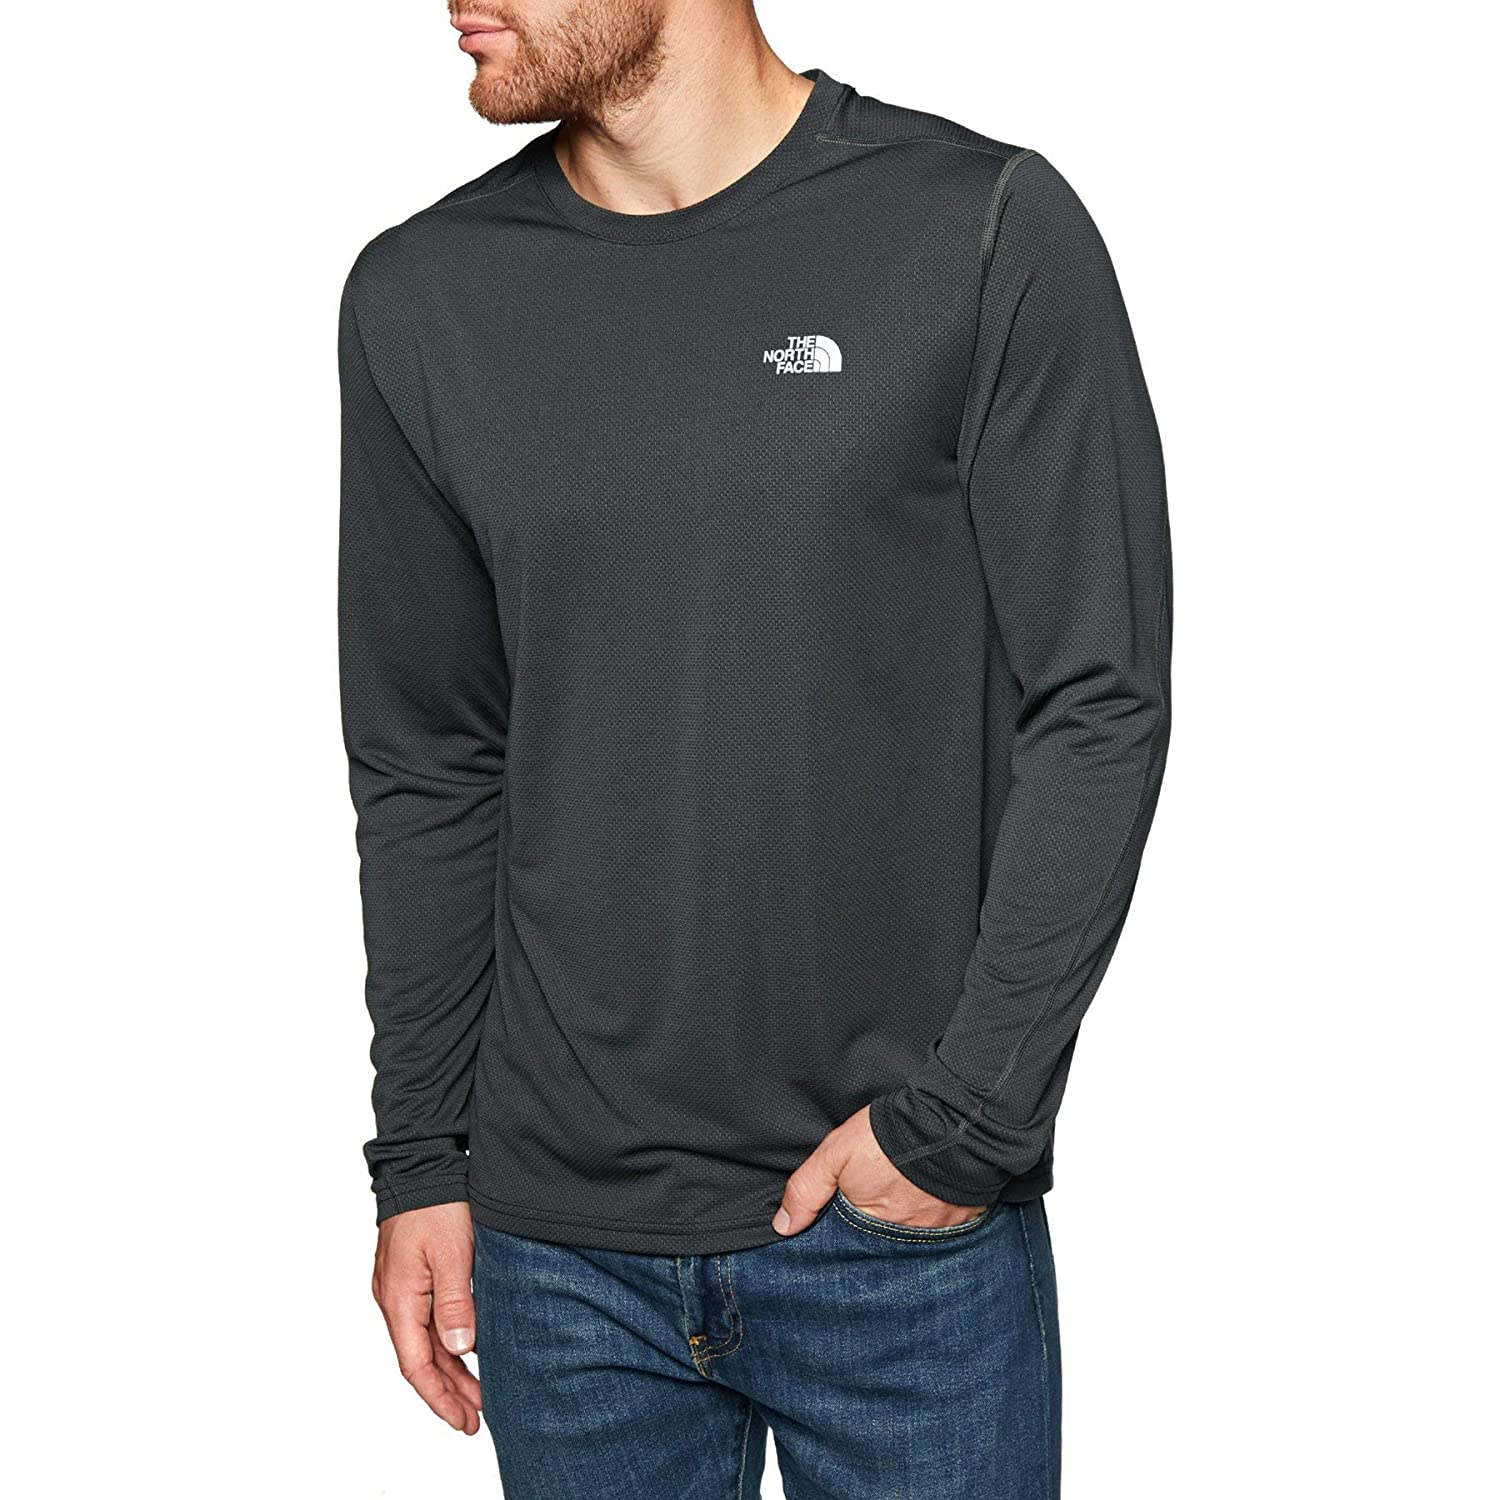 The North Face T93f54, Camicia 24/7 Tech Long-Sleeve Uomo